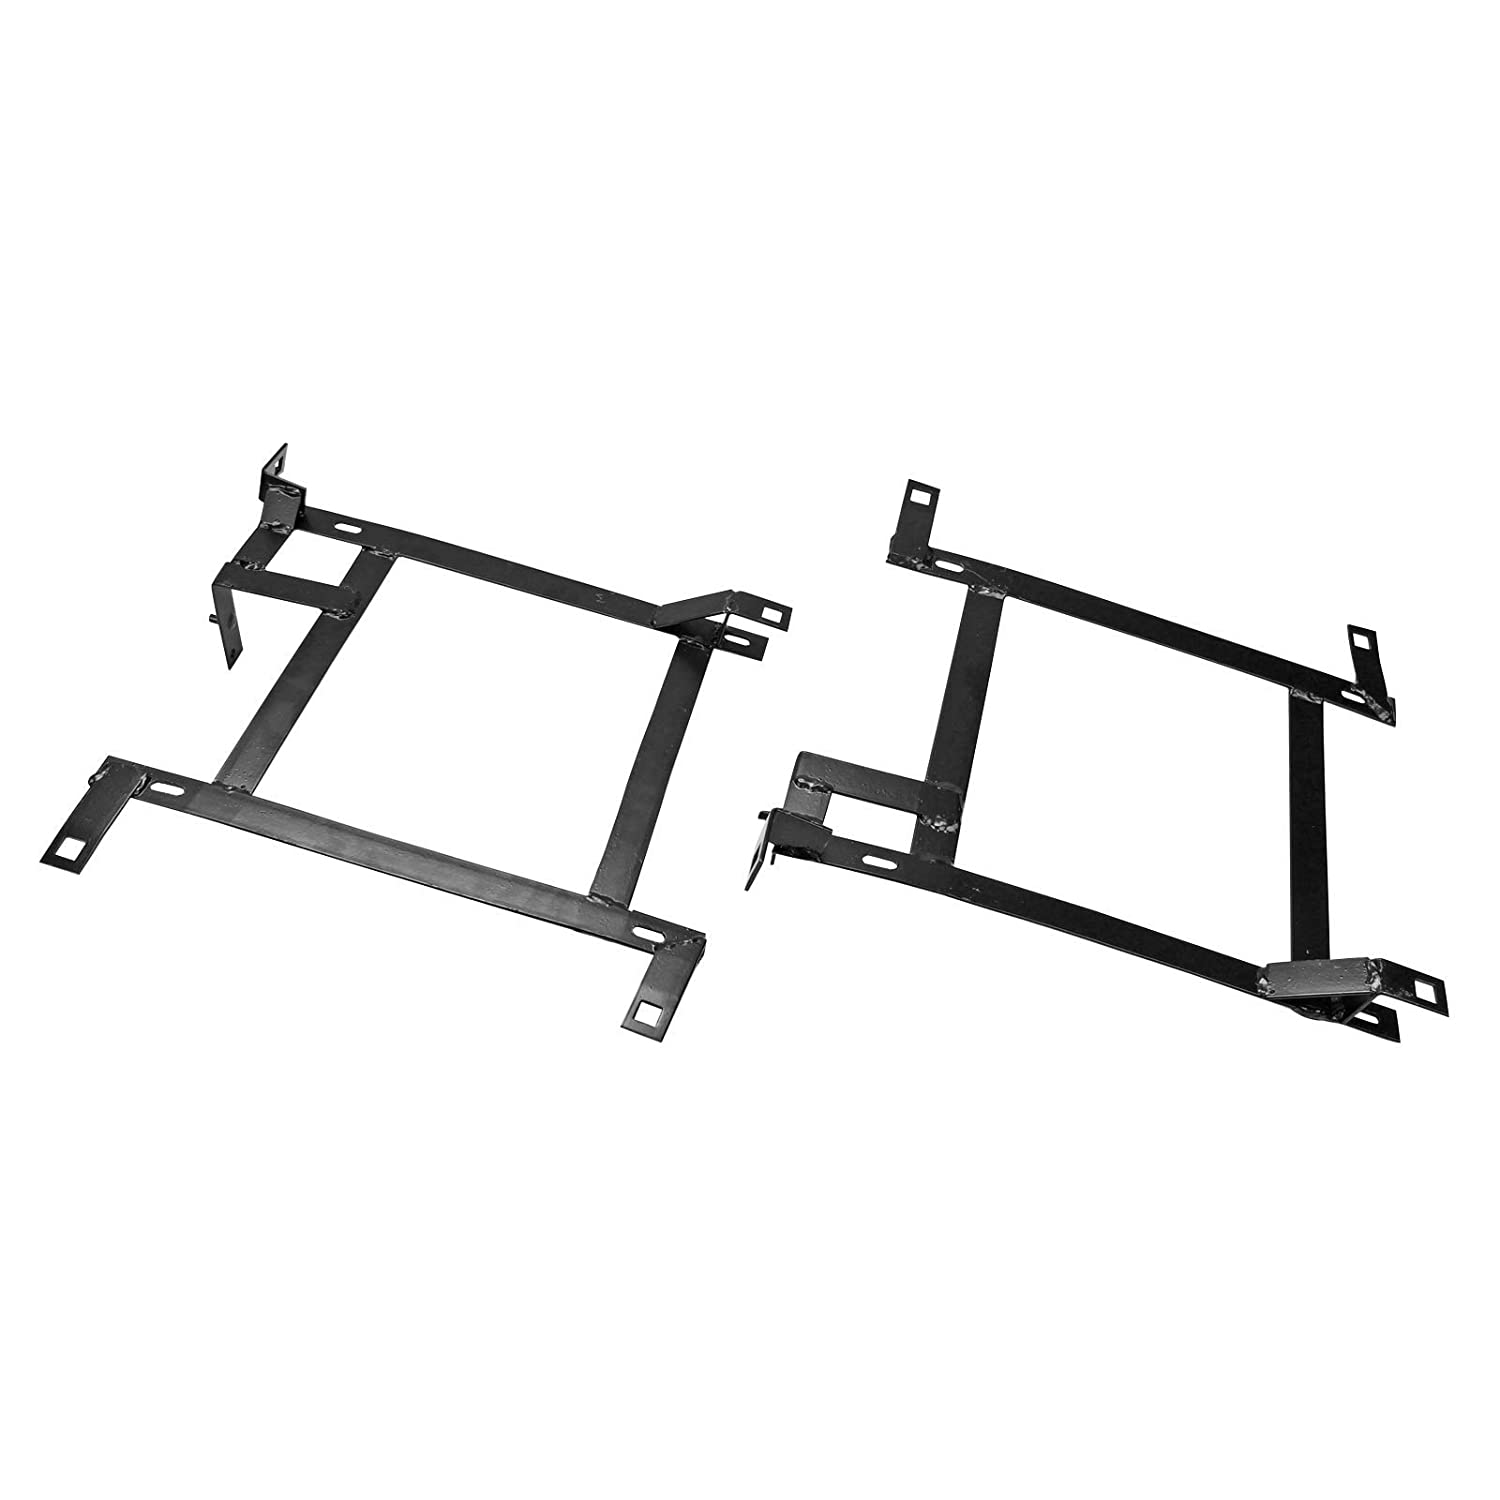 For 1989-1998 Nissan 240SX S13 S14 Driver /& Passenger Sides Pair Of Racing Seat Mounting Brackets Rail Track Left /& Right